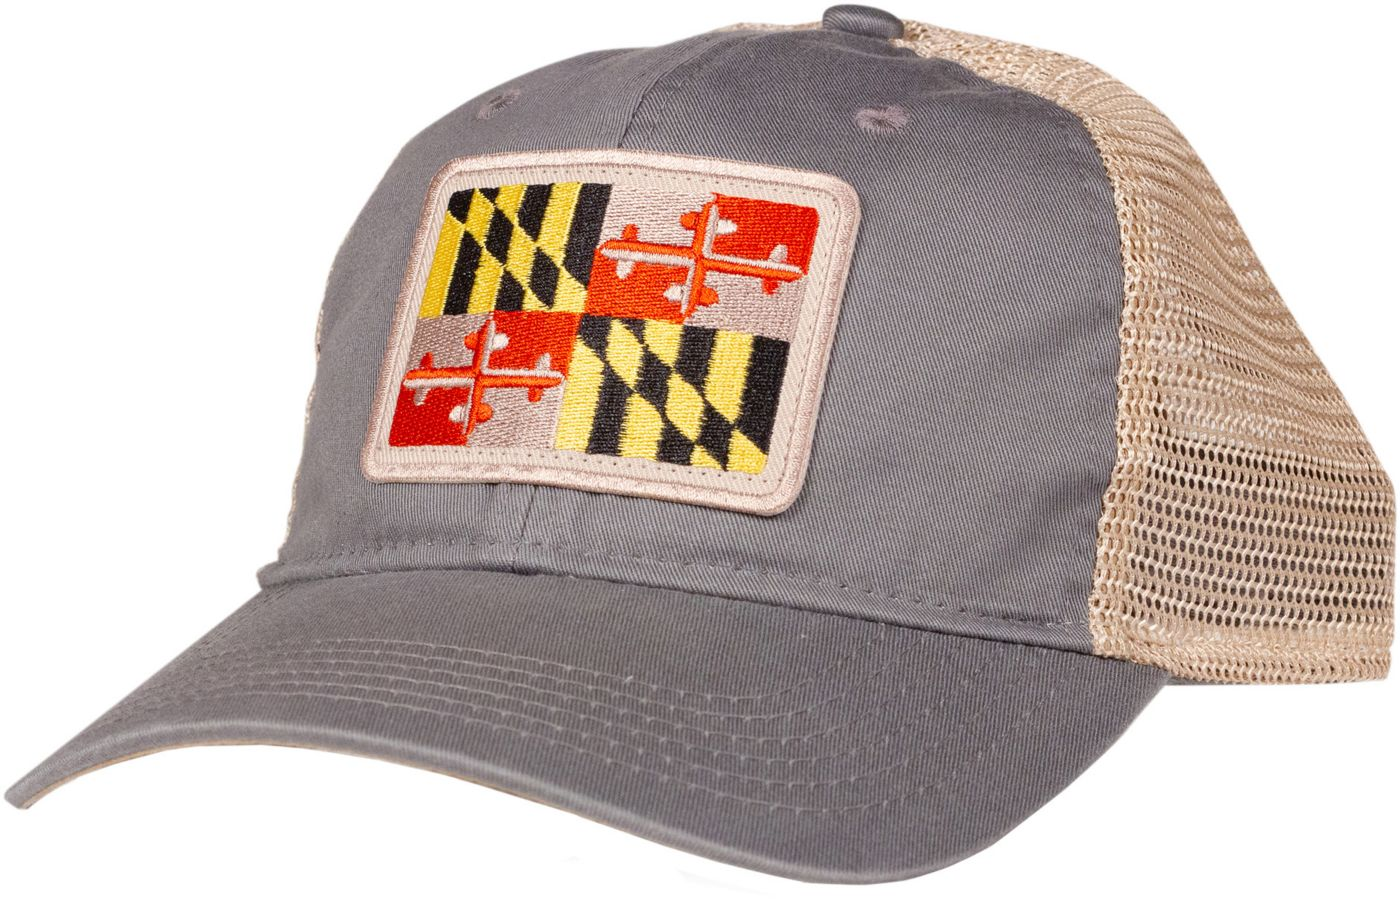 Home State Apparel Adult Maryland State Flag Trucker Hat